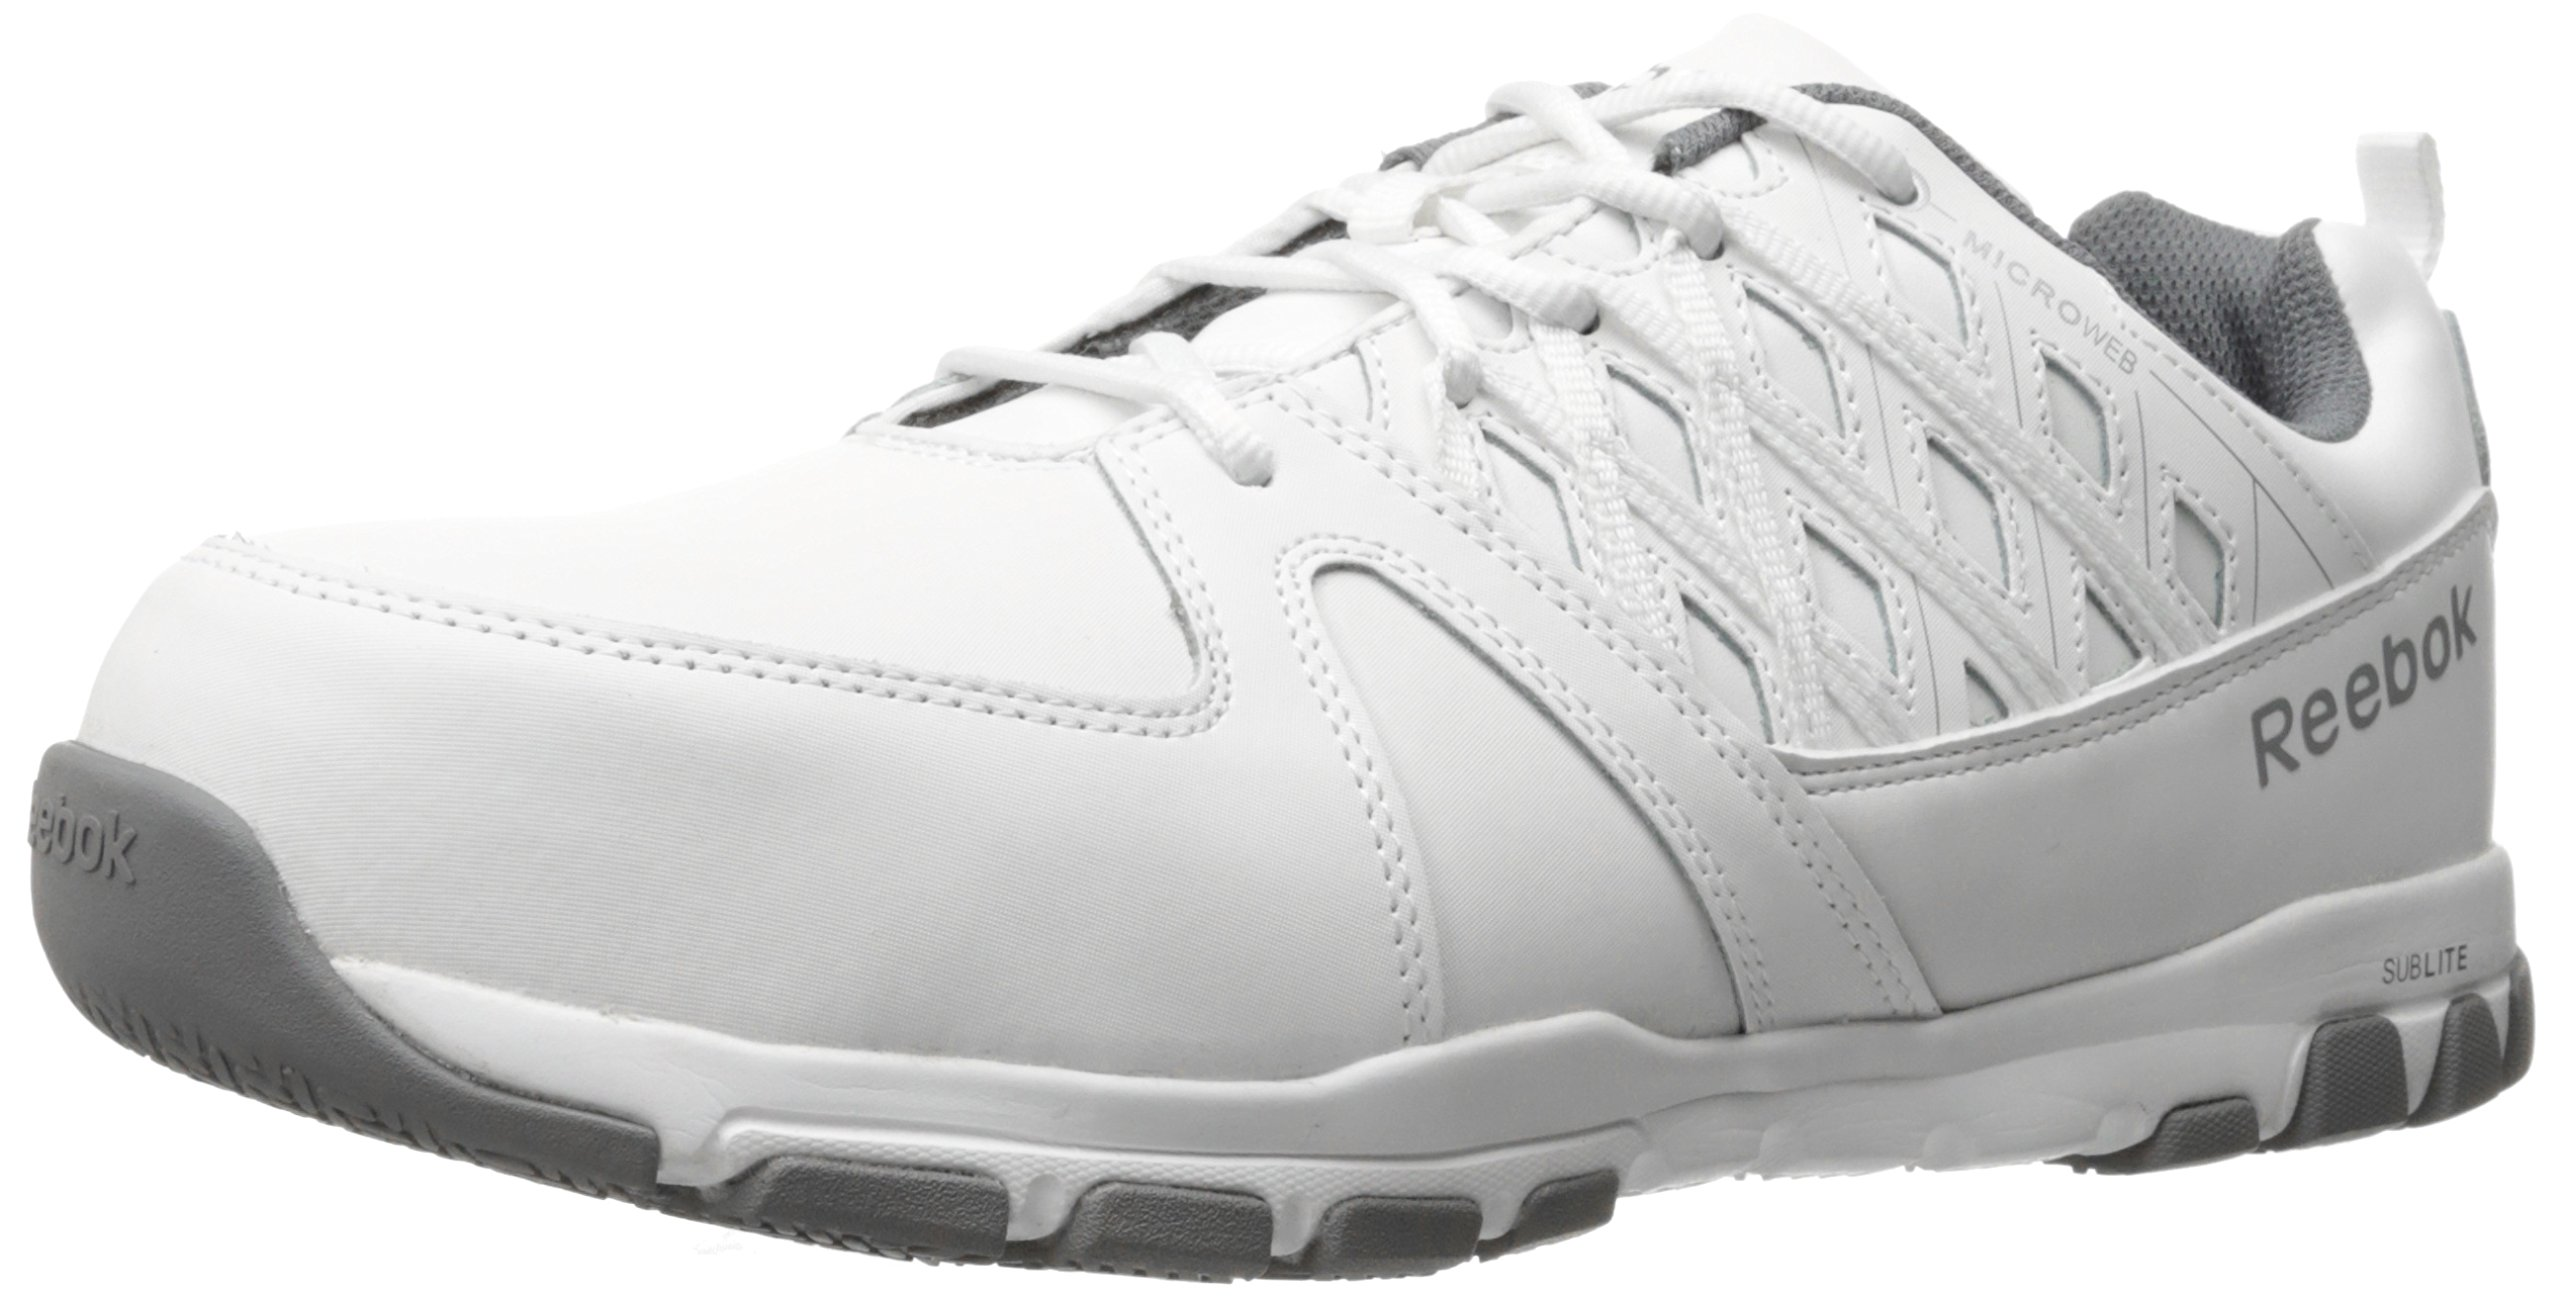 Reebok Work Men's Sublite Work RB4443 Industrial and Construction Shoe, White, 8 M US